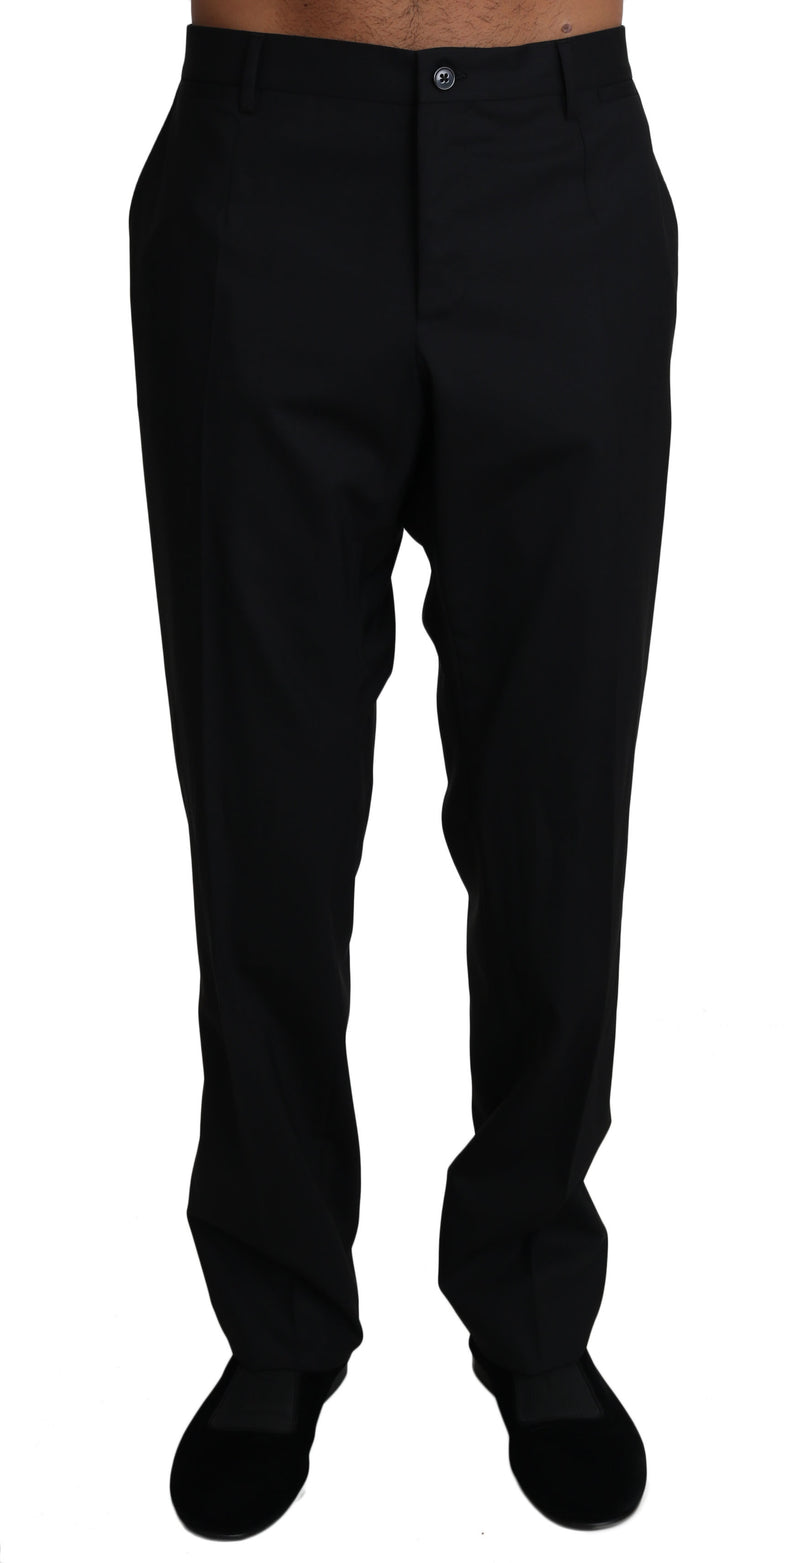 Black Wool Stretch Dress Trousers Pants